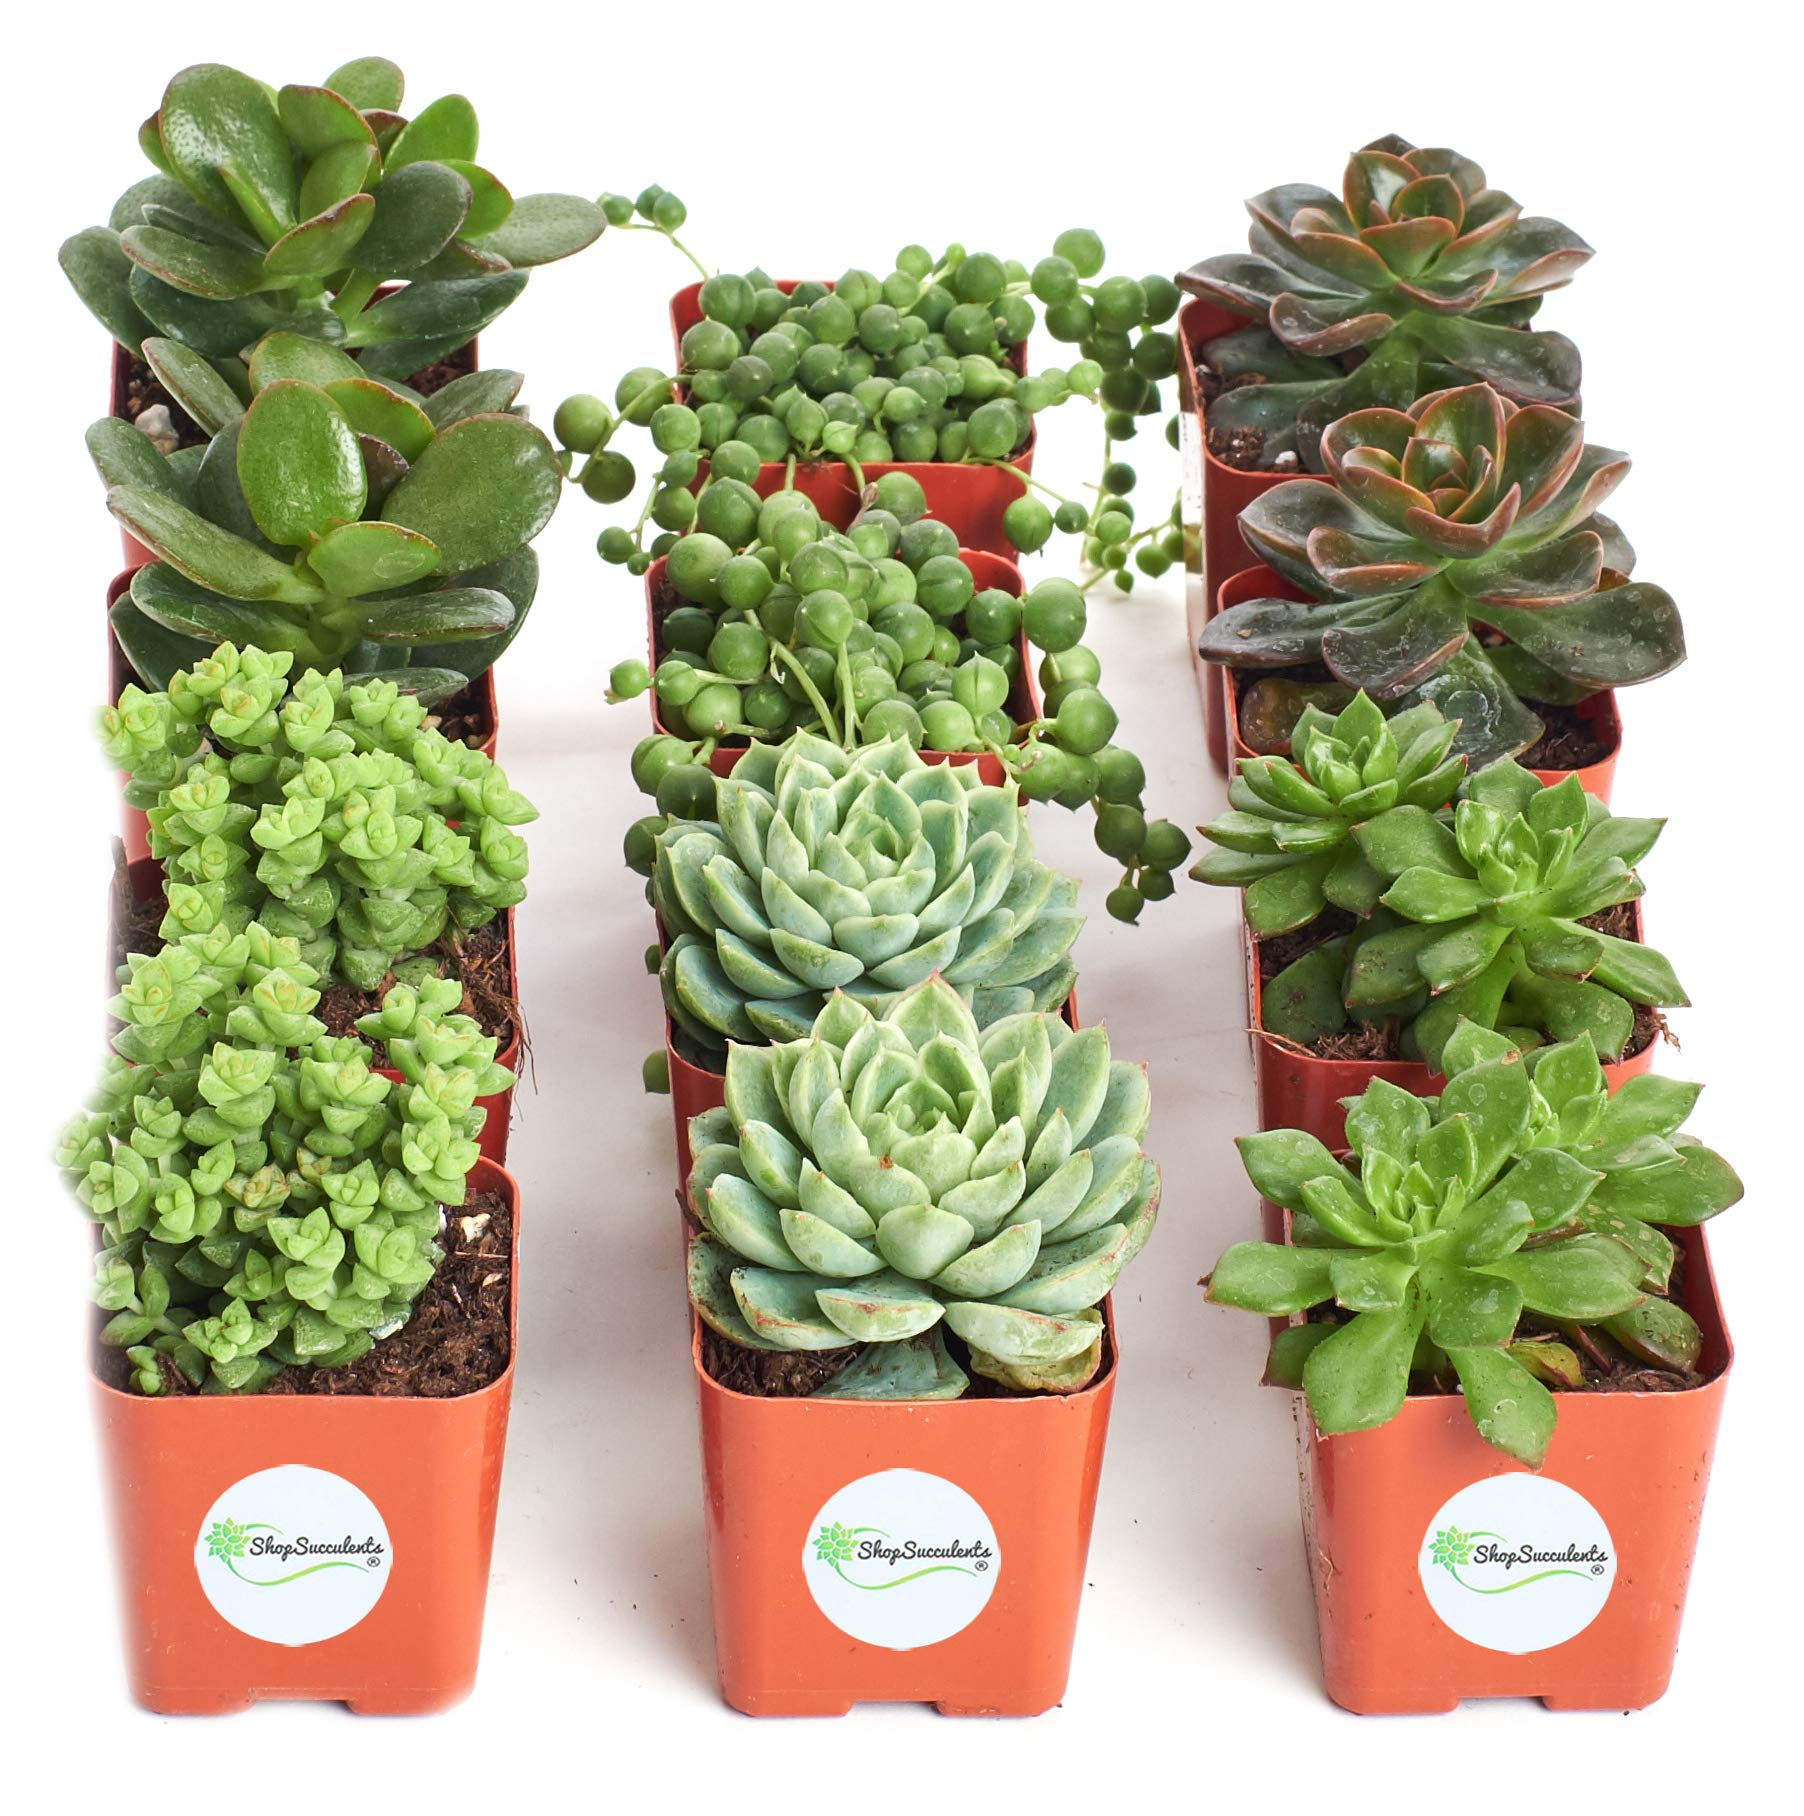 Shop Succulents | Green Live Plants, Hand Selected Variety Pack of Mini Succulents | | Collection of 12 in 2'' pots, Pack of 12 by Shop Succulents (Image #1)